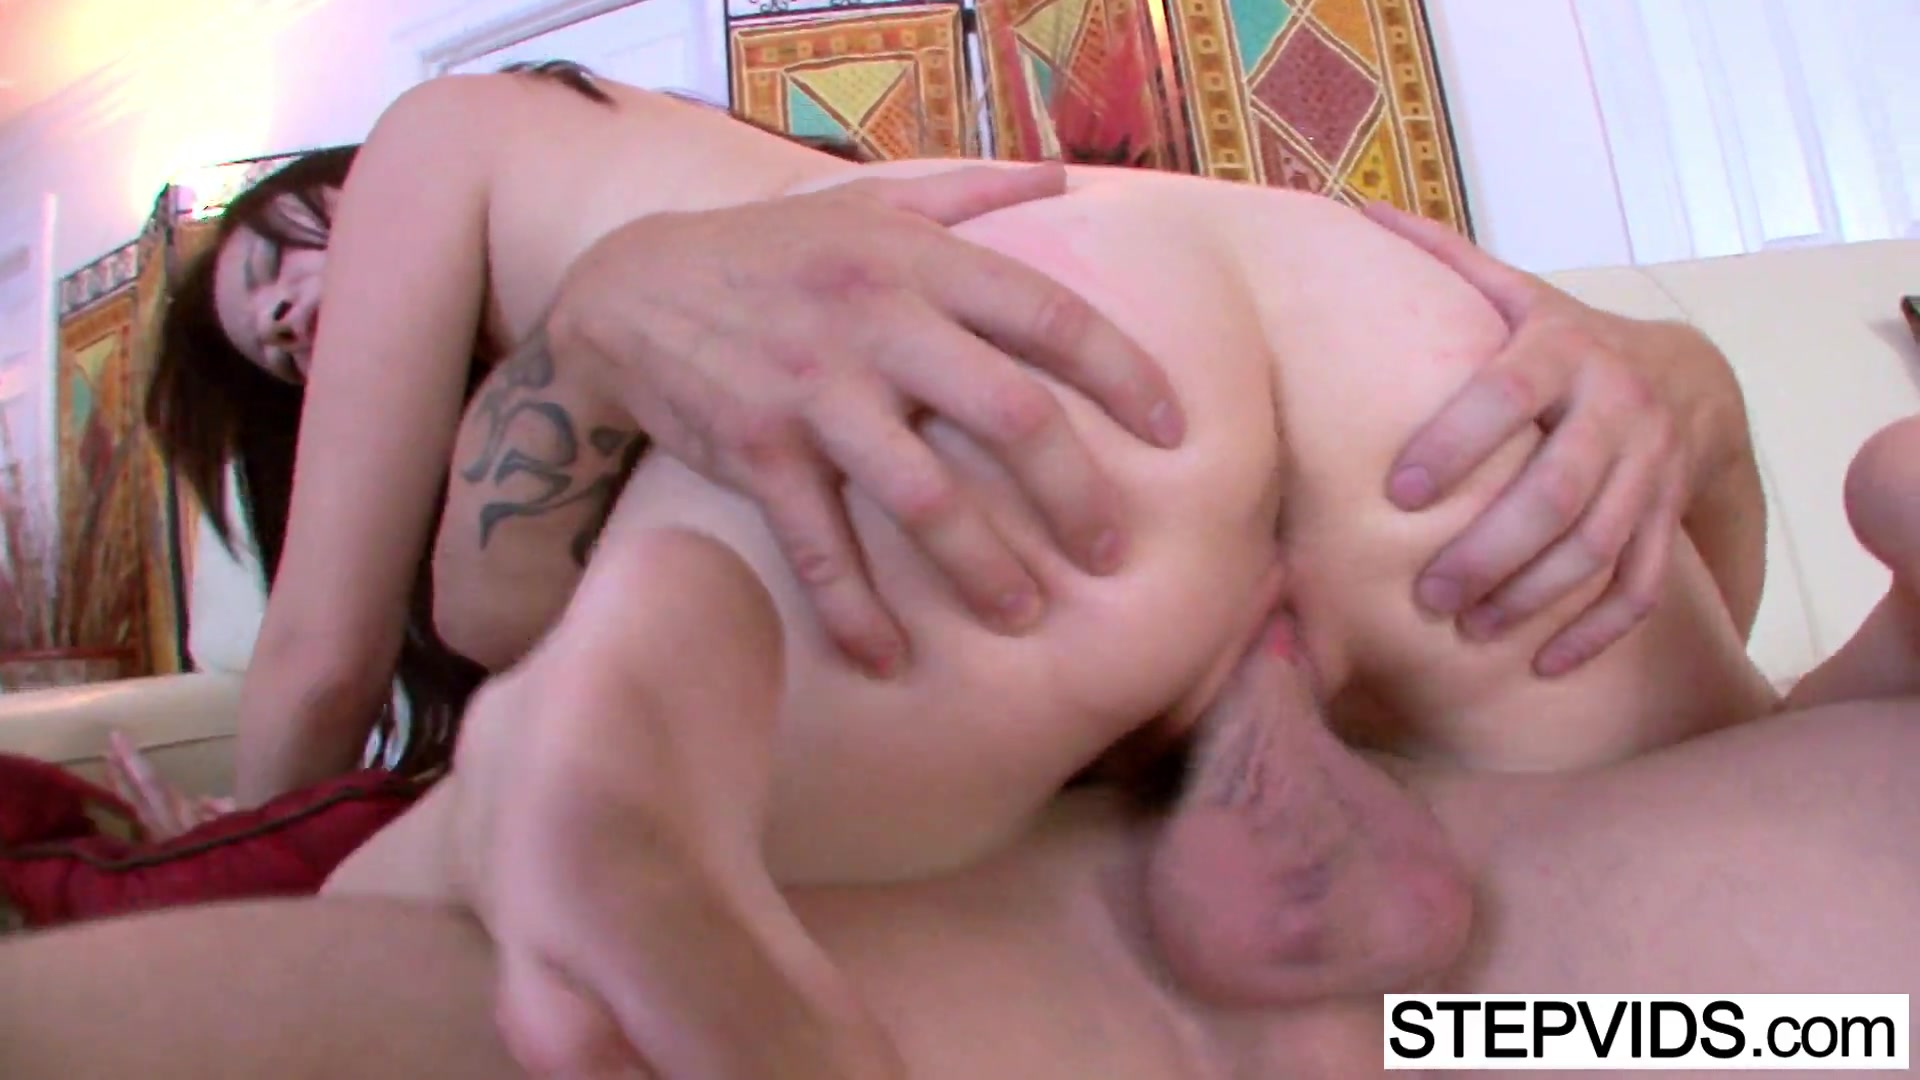 Alison rey gets teached by stepdad 3